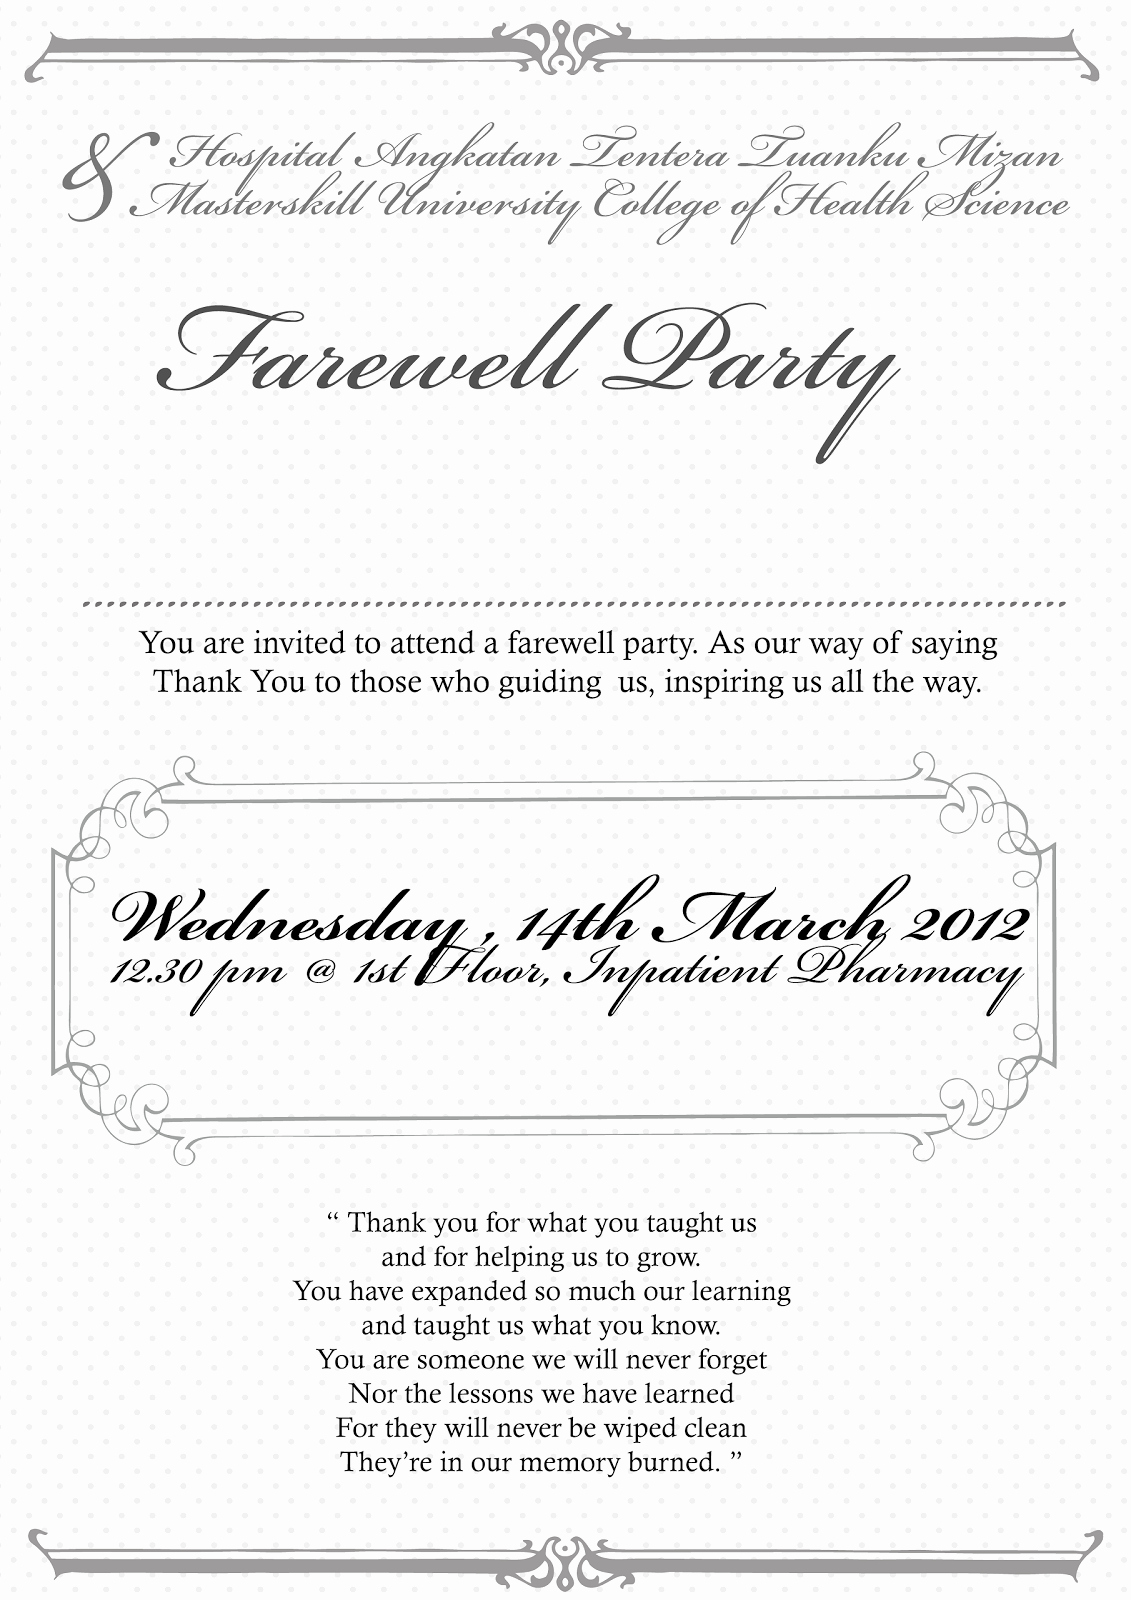 Goodbye Party Invitation Wording Awesome thebigtree Invitation Card Farewell Party